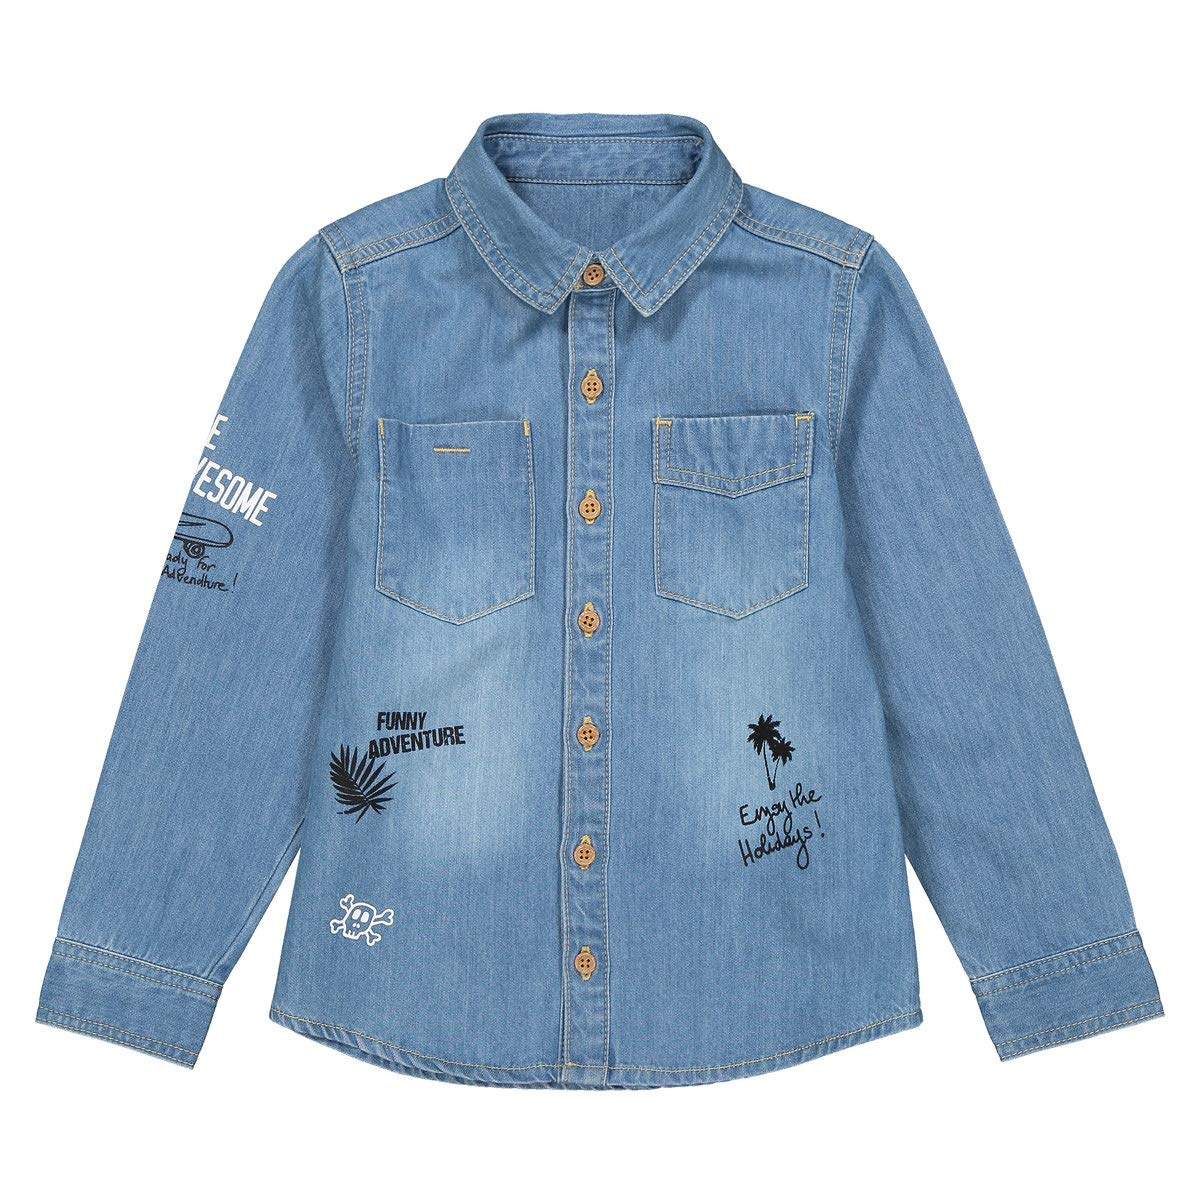 La Redoute Collections Denim Shirt, 3-12 Years Blue Size 3 Years (94 cm)